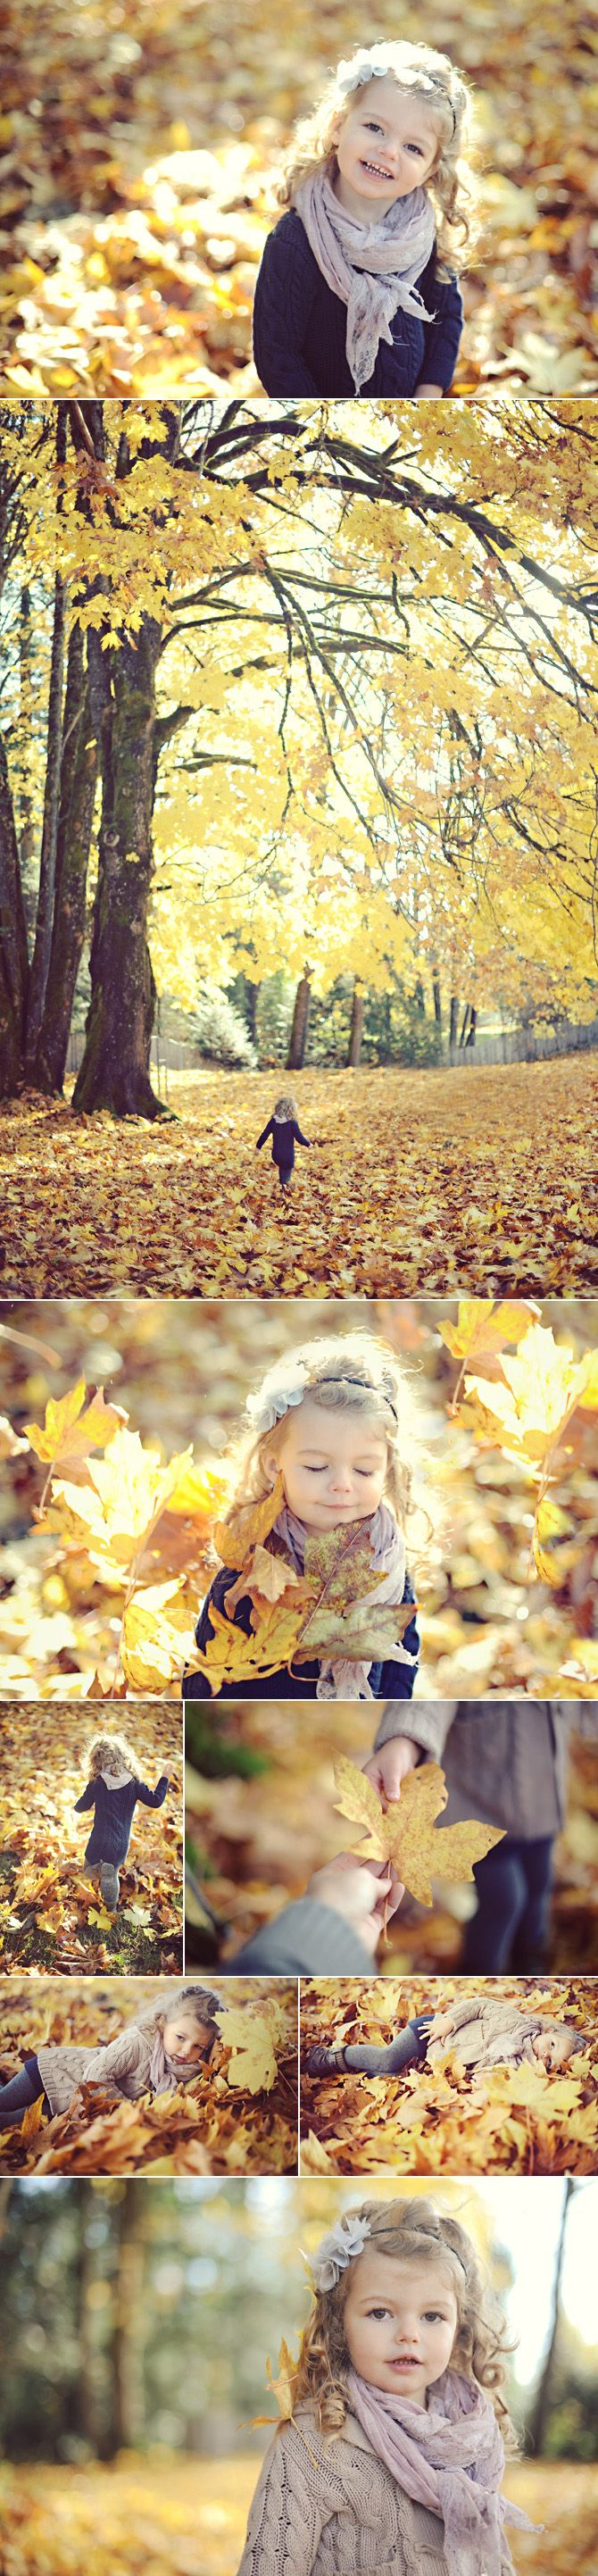 Documentary Inspired | Lifestyle | Real Moments | Raw Emotion | Candid Photography | Child Fall Leave Session